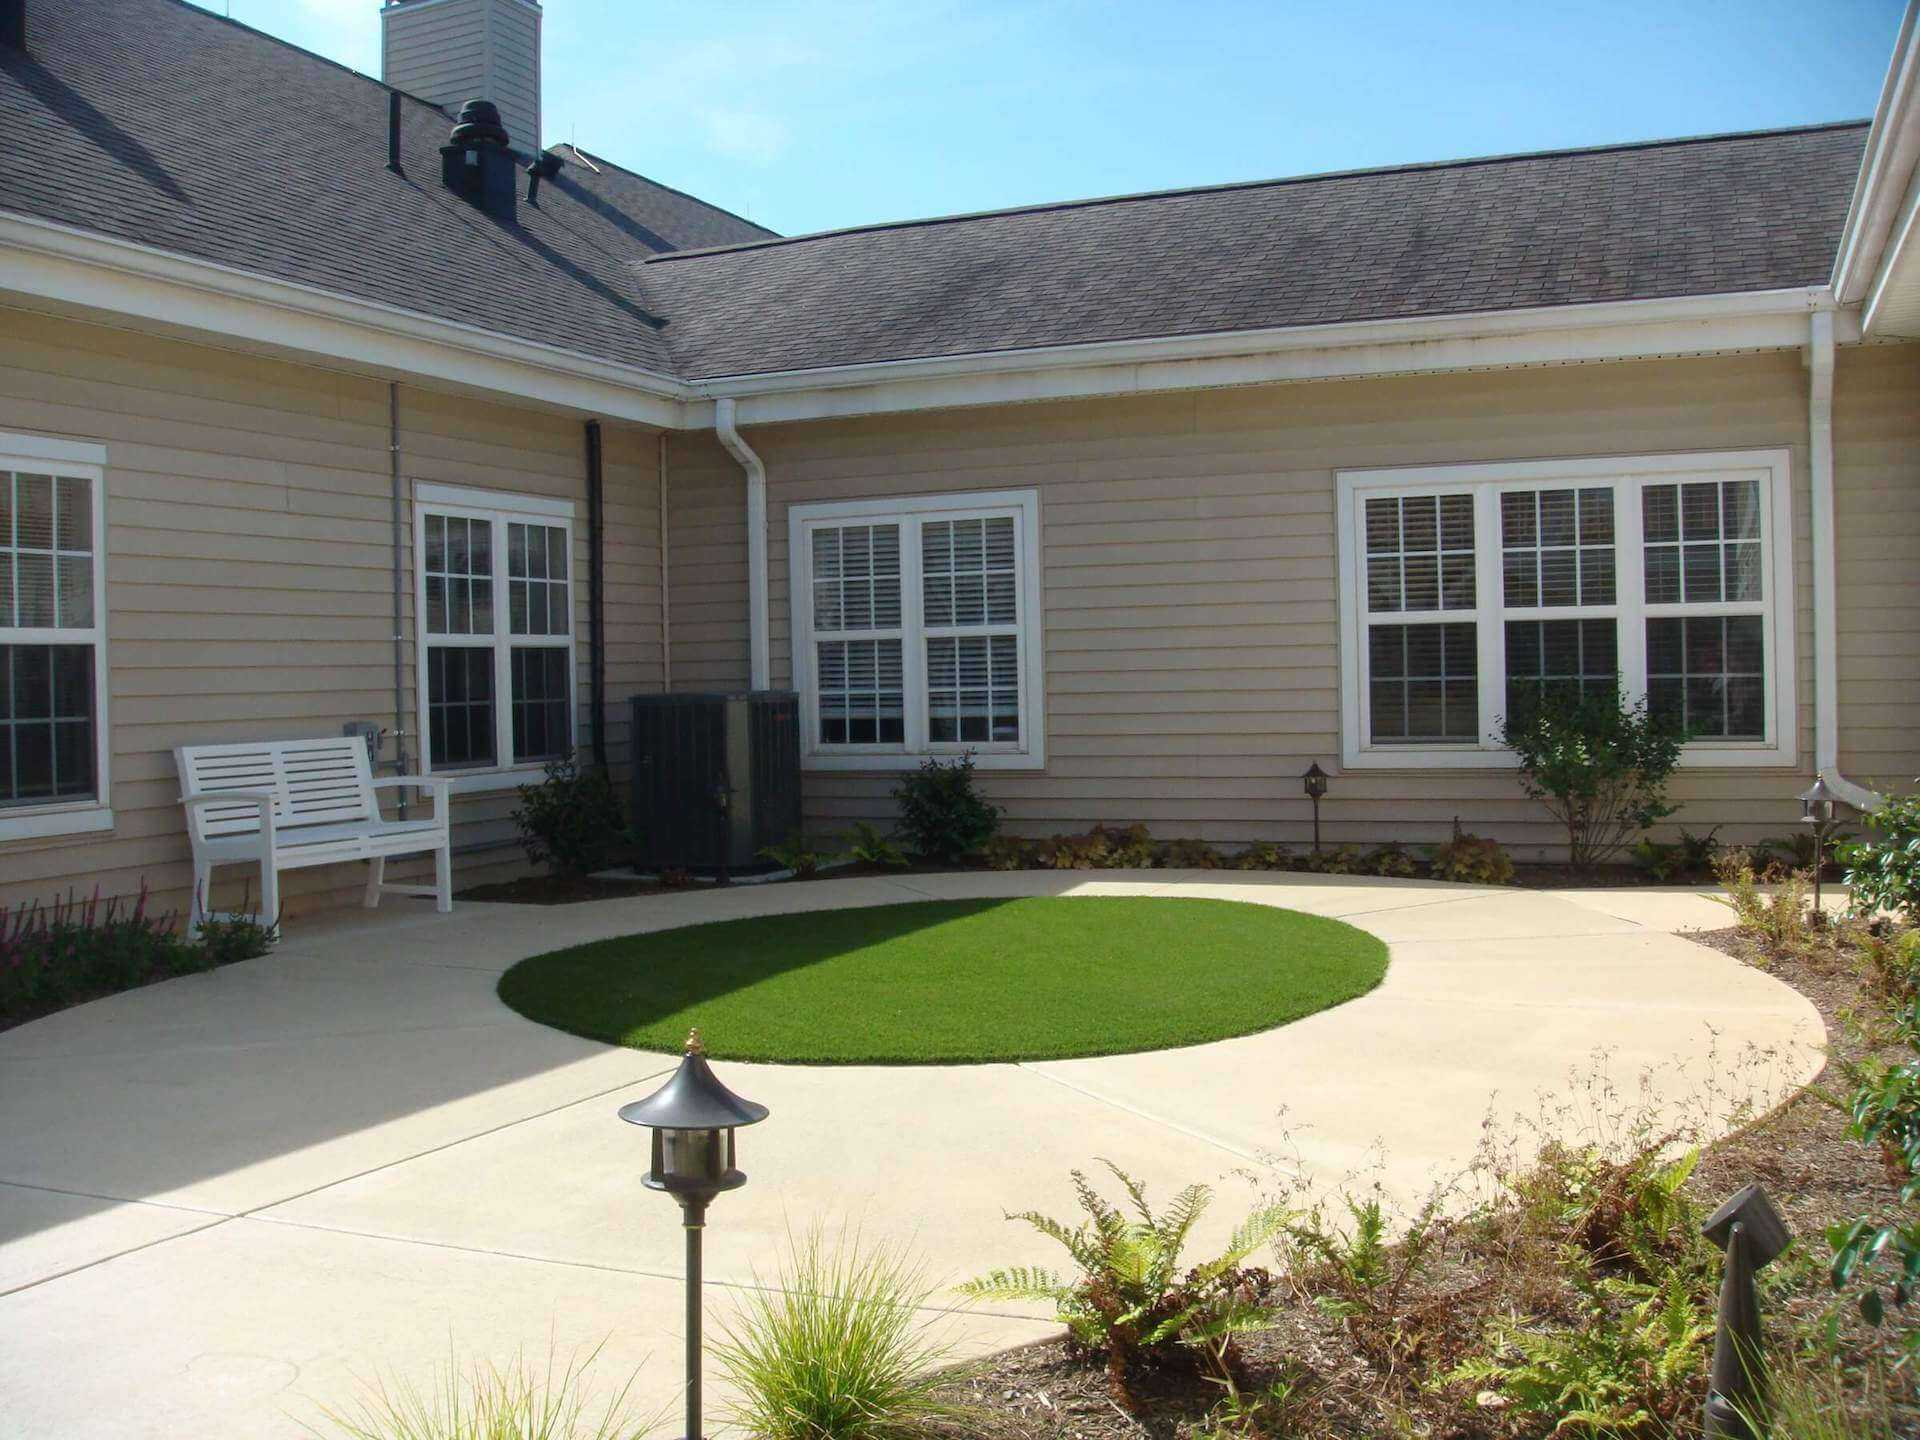 open green area in the midst of the landscaping area